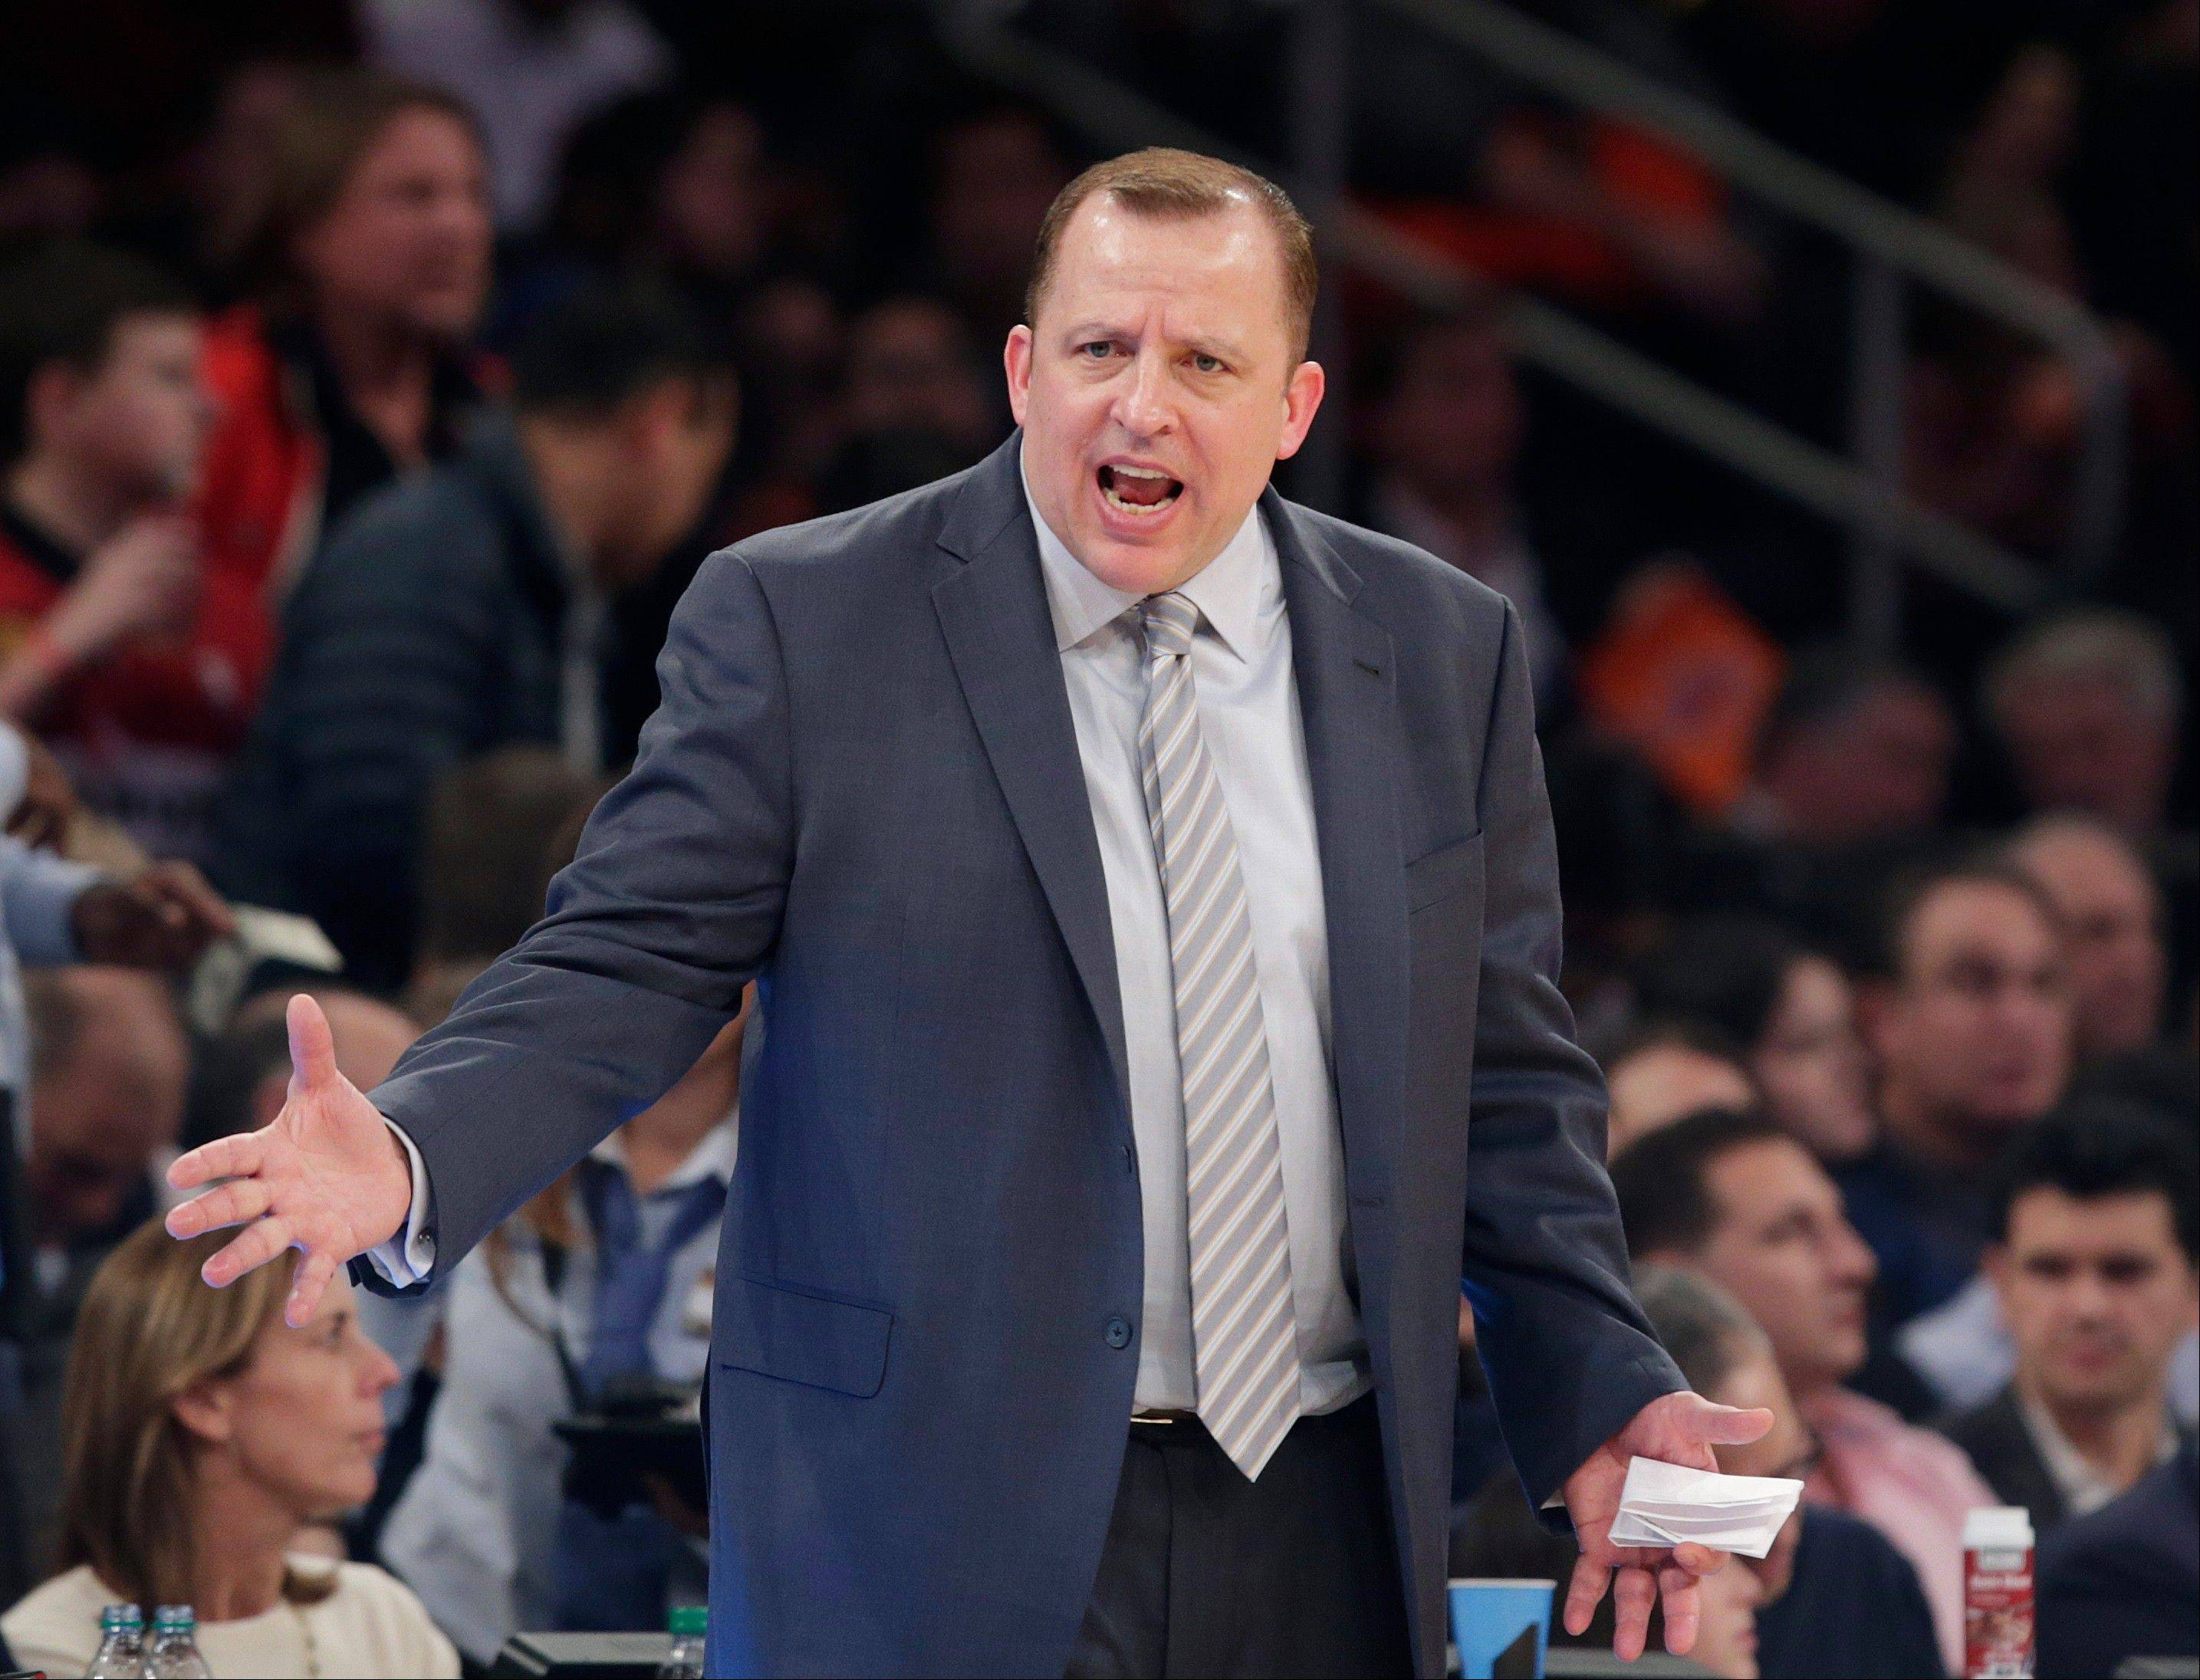 The Bulls' Tom Thibodeau bluntly dismissed speculation that he might consider coaching the New York Knicks in the near future.